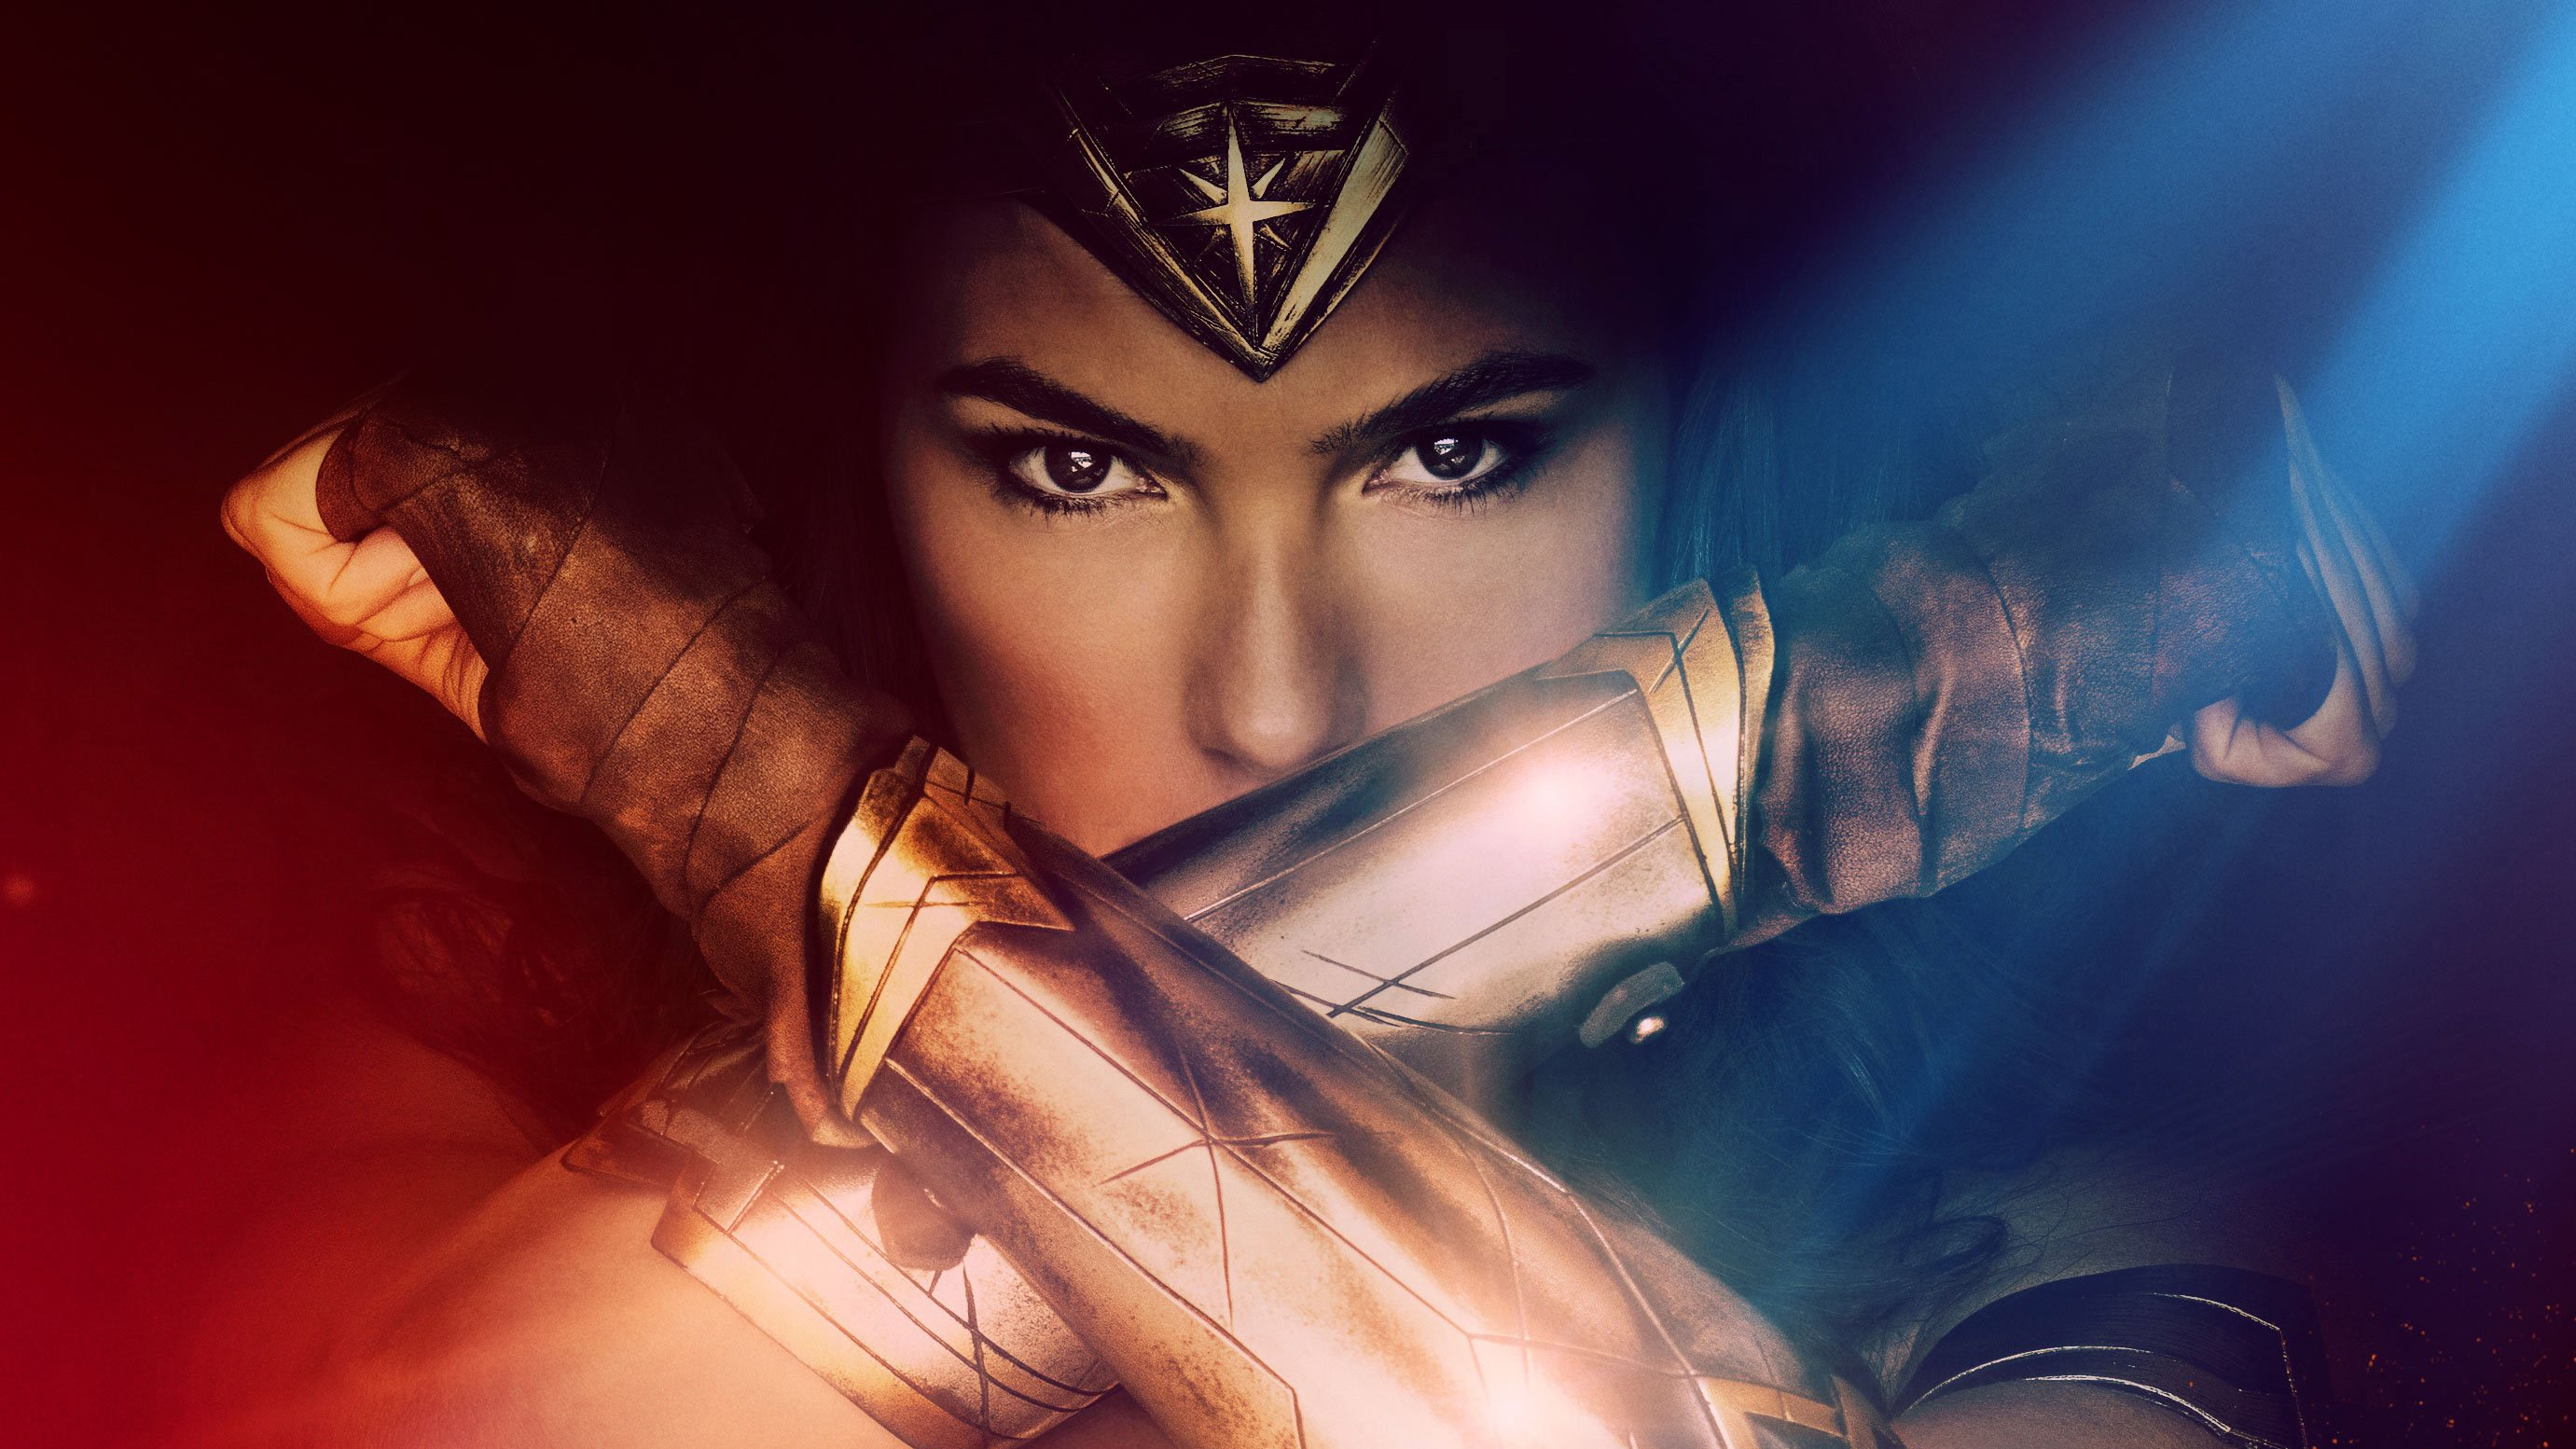 Wonder Woman Wallpaper Download Free Amazing Wallpapers Of